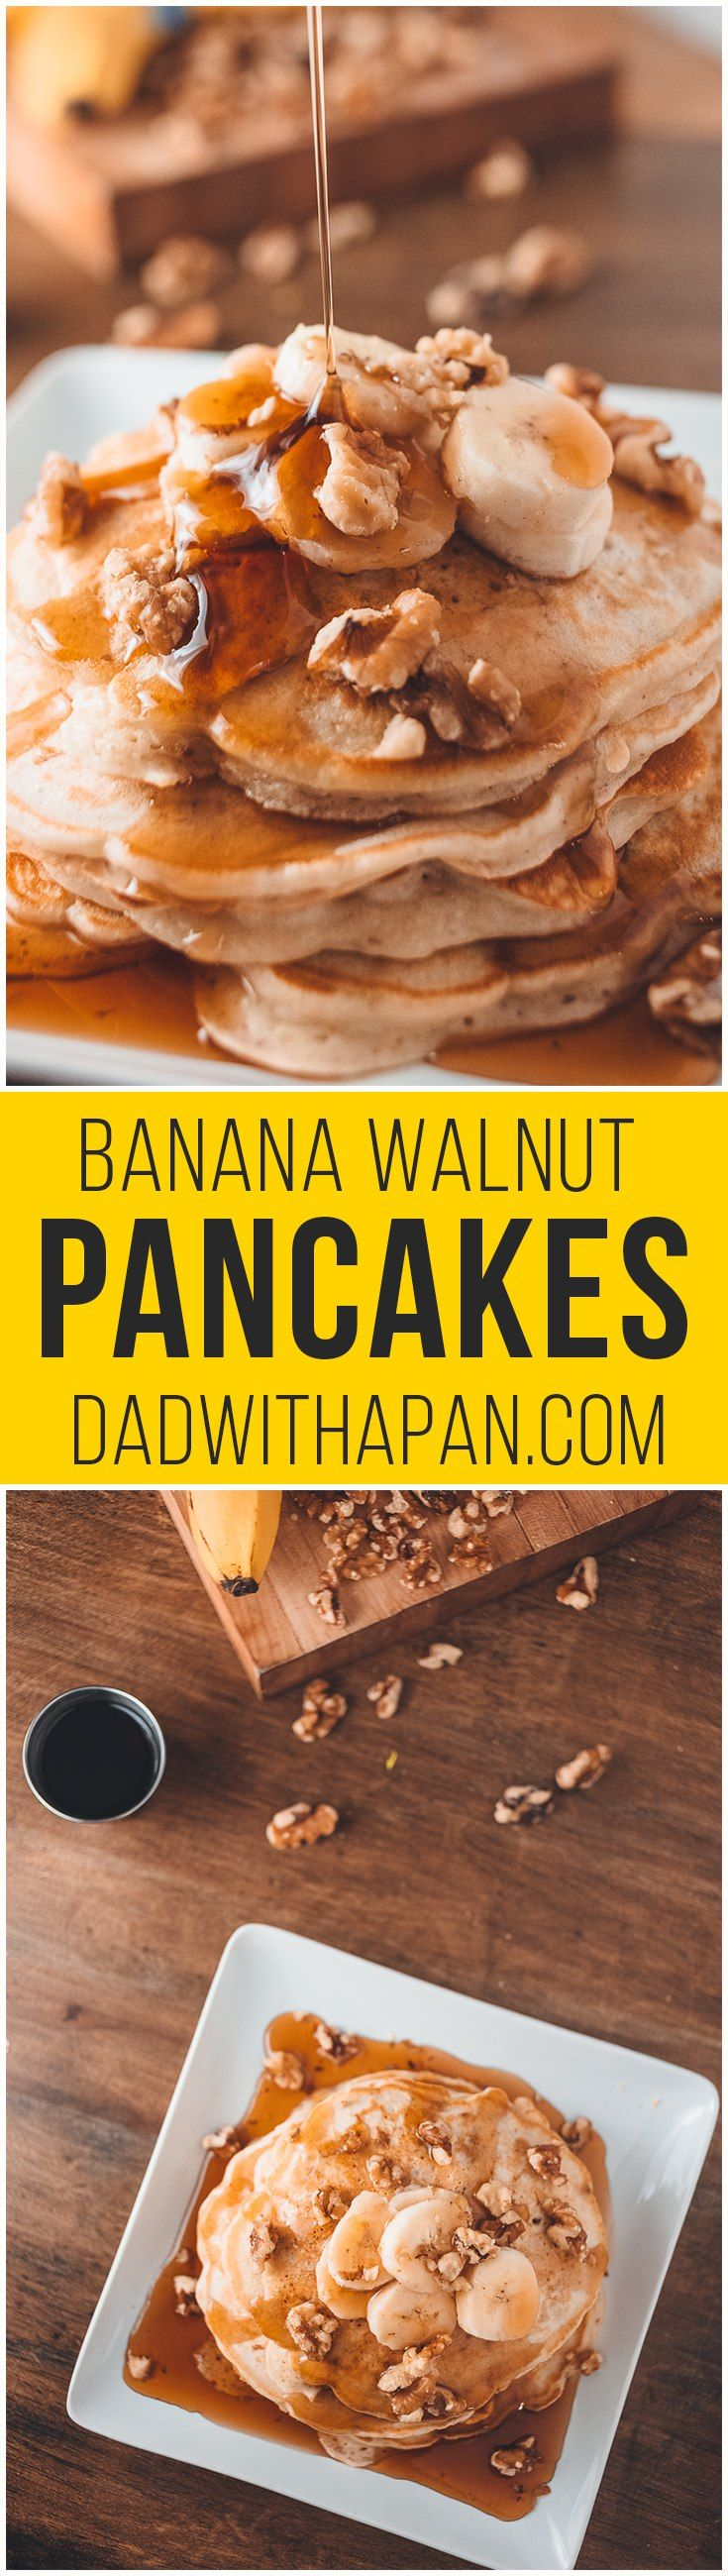 Banana Walnut Pancakes - Dad With A Pan-made them this morning & yummy!